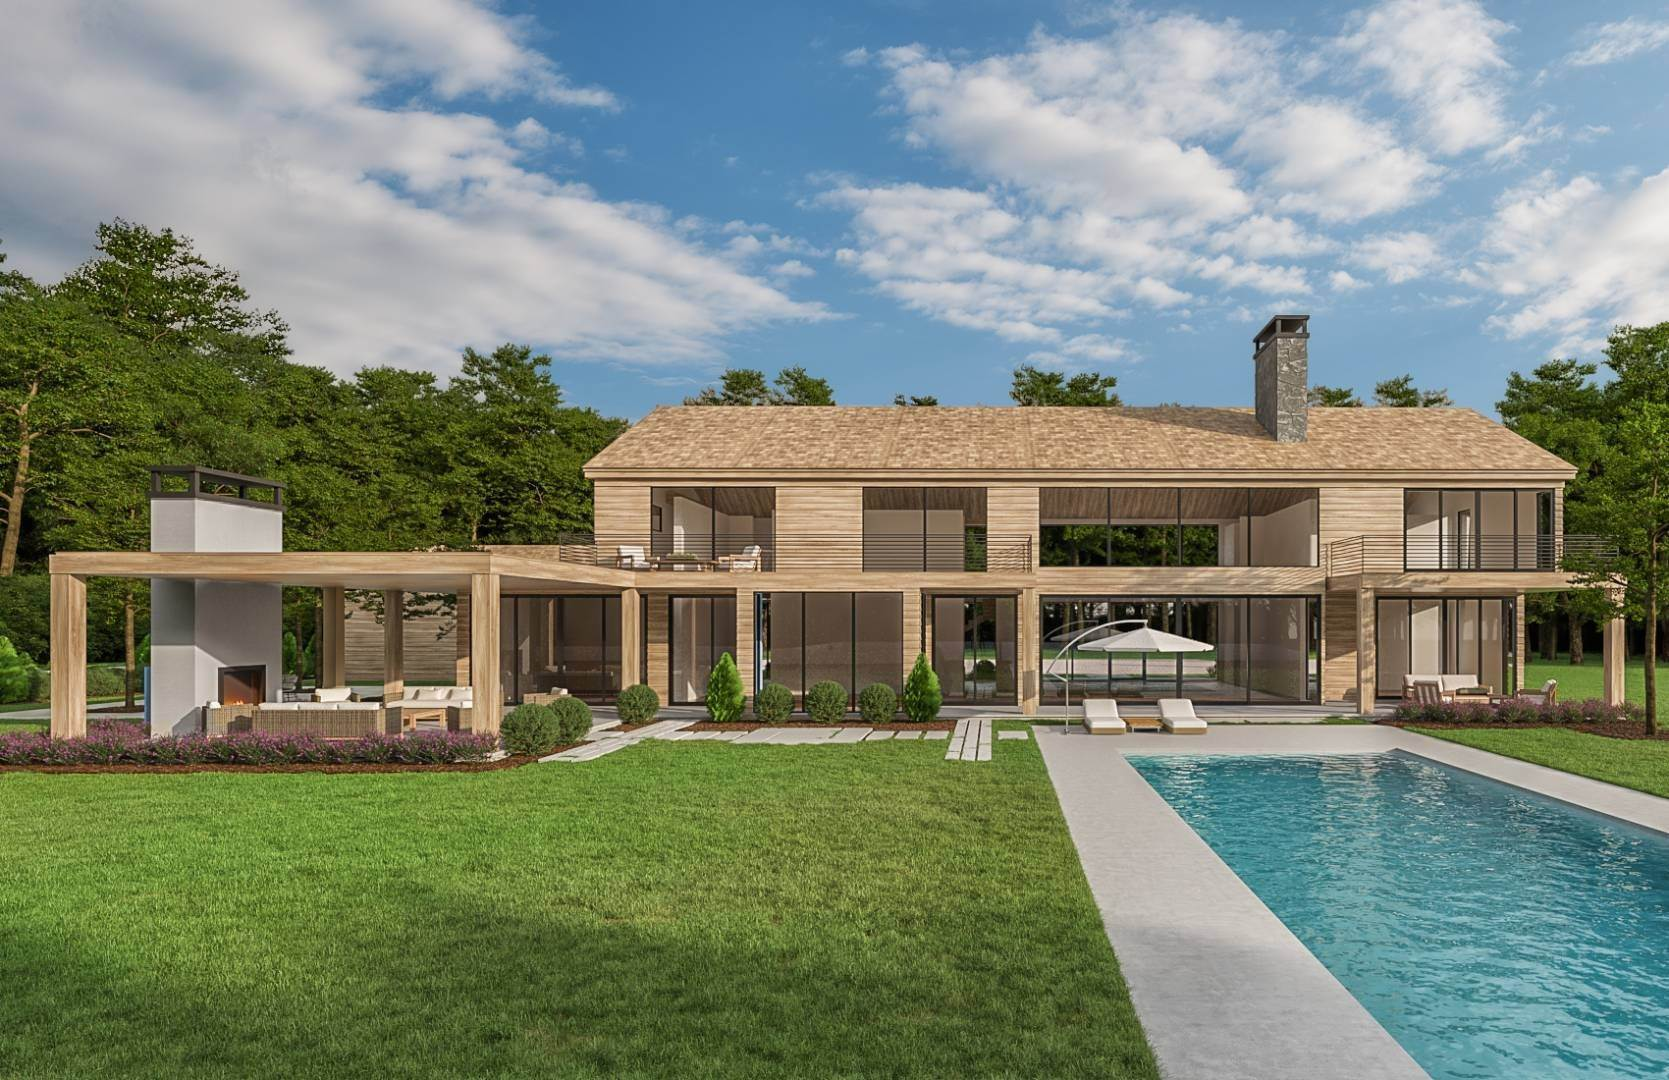 Single Family Home for Sale at Sprawling, Modern Construction With Tennis On 7 Acres! 1802 Noyac Path, Sag Harbor, NY 11963